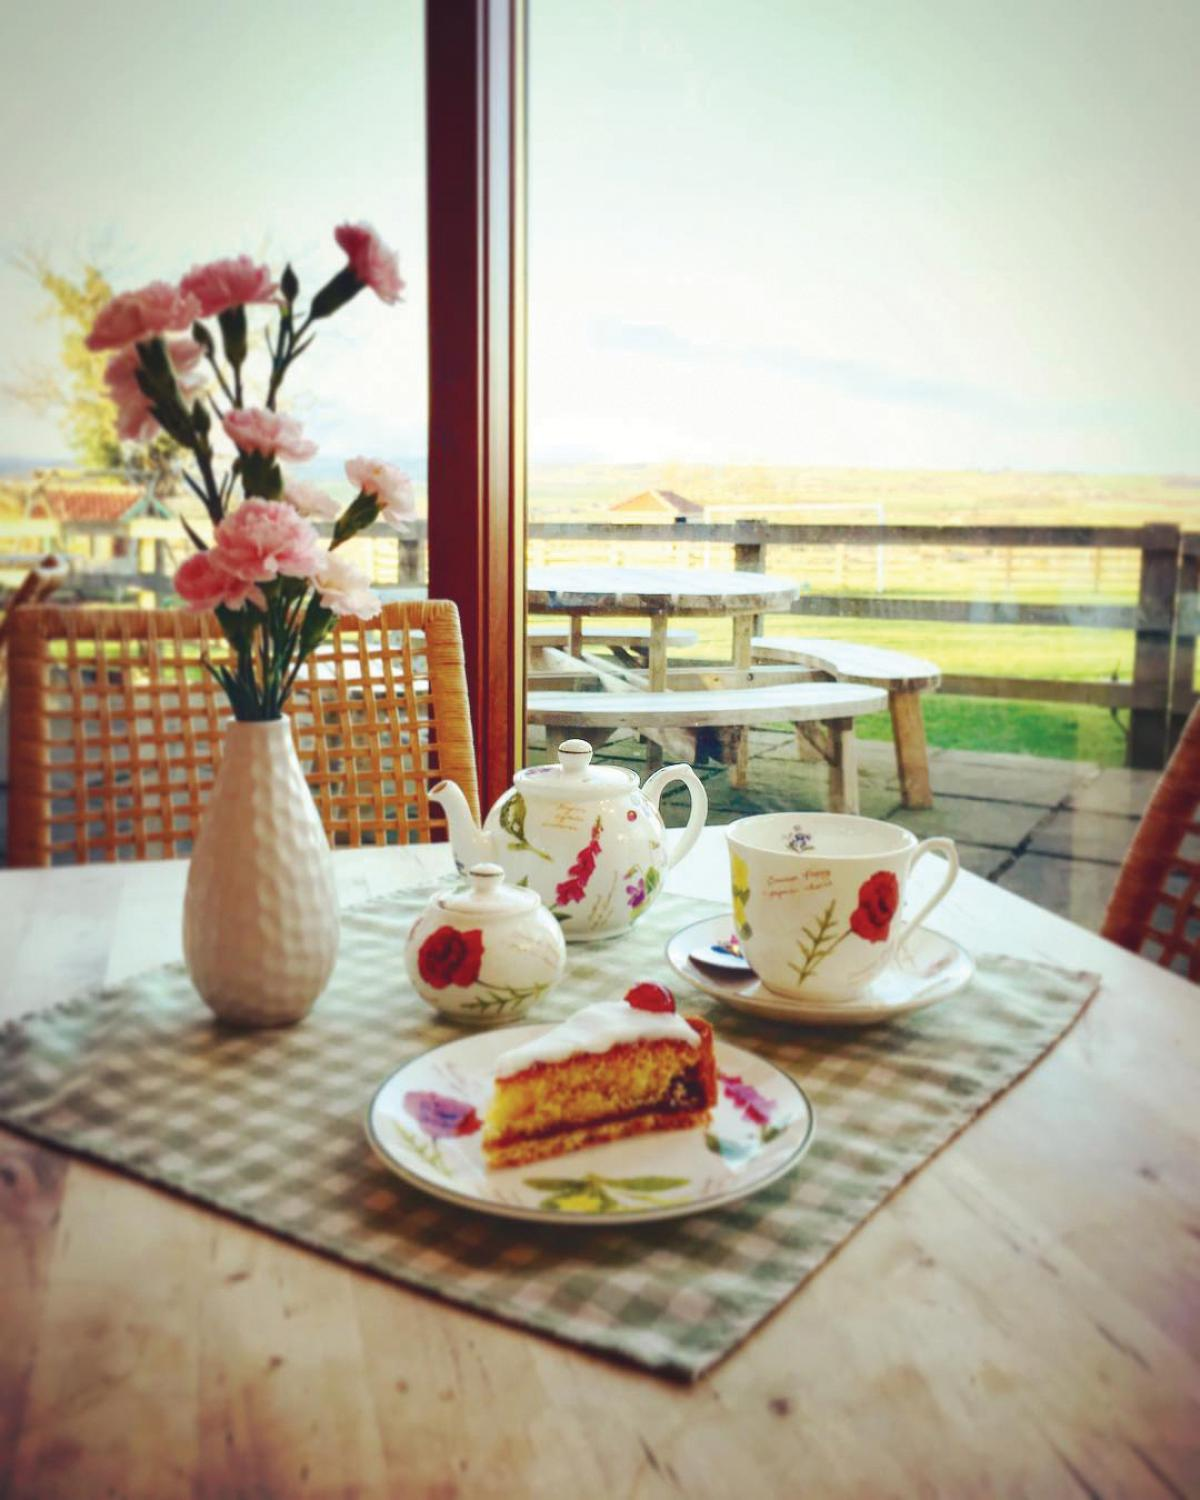 Images from High Parks Tearoom